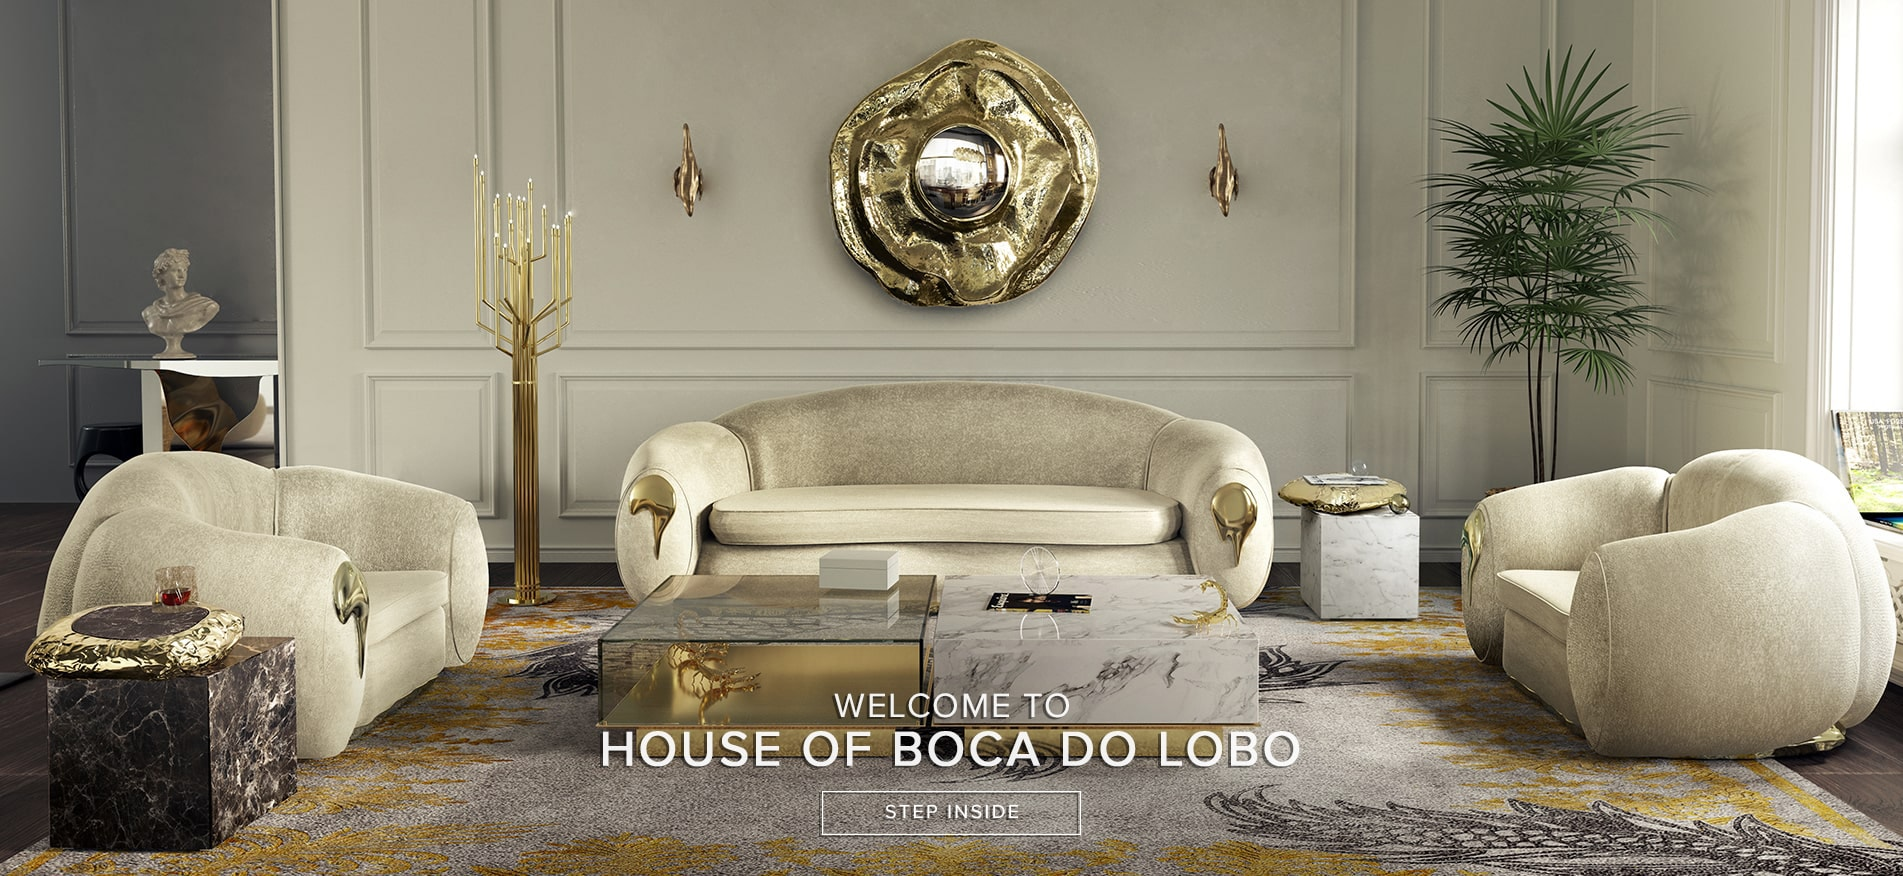 Welcome to House of Boca do Lobo - Step Inside